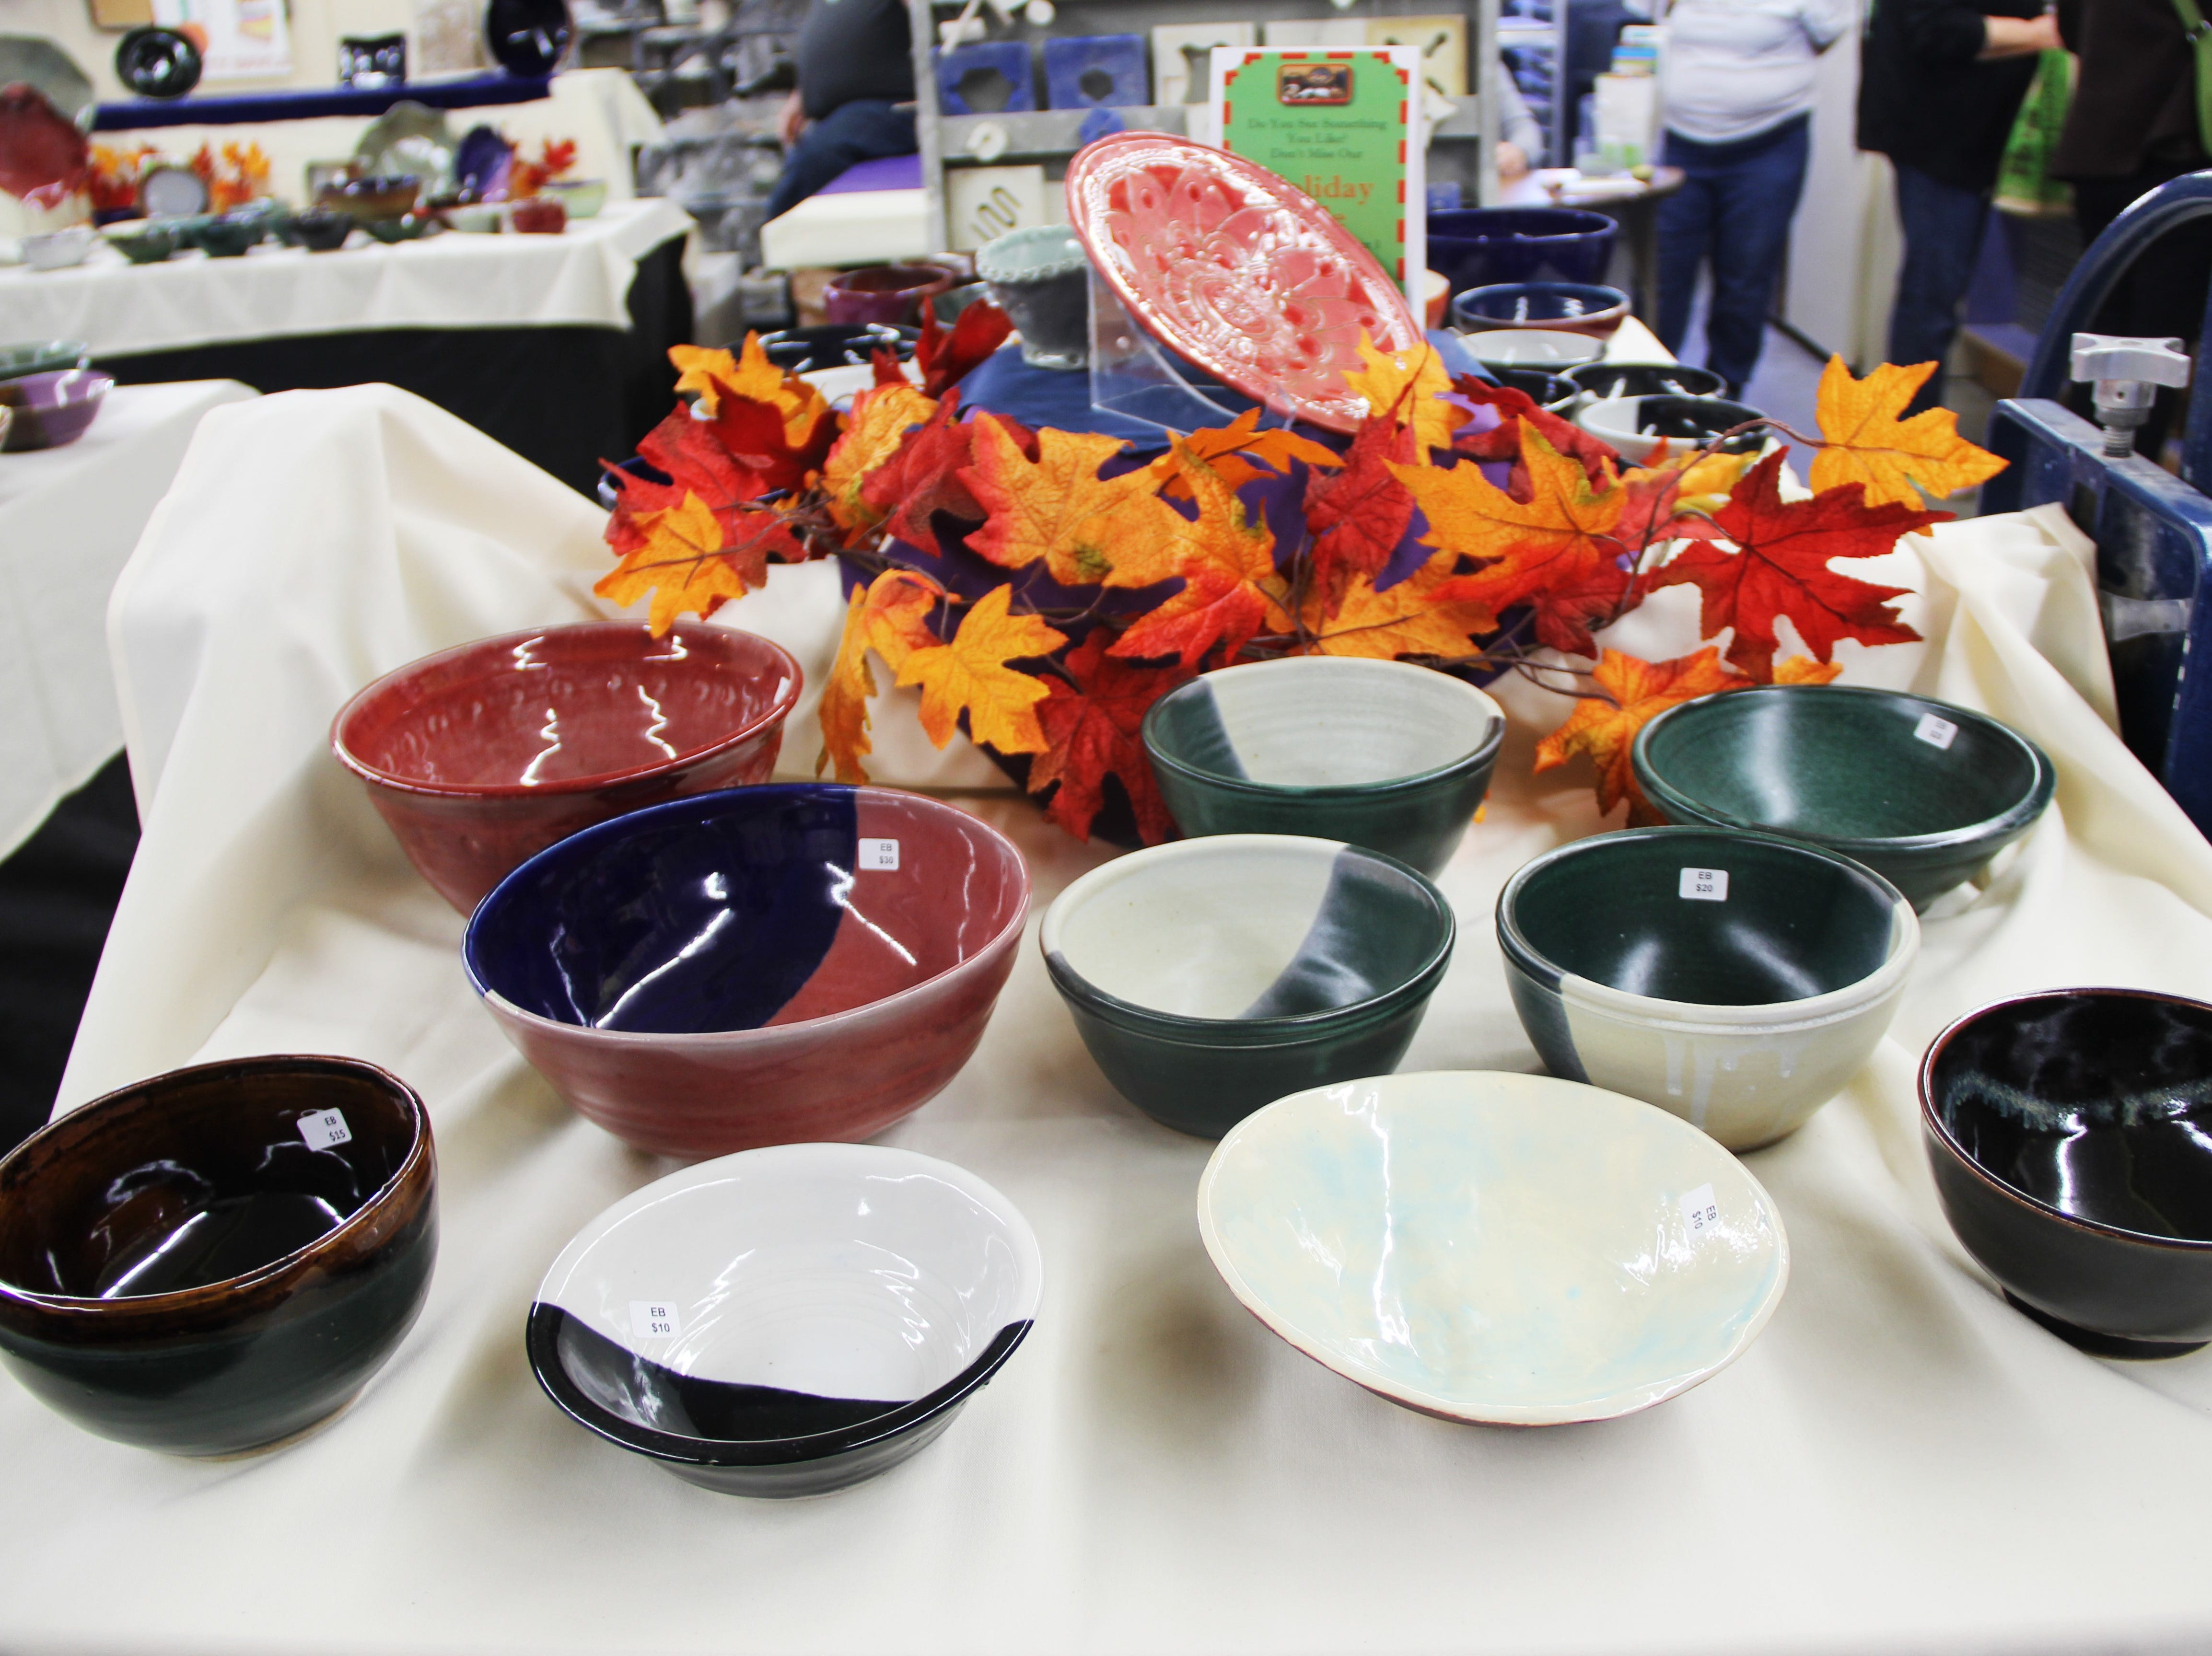 A table displaying bowls at the Willamette Art Center's Empty Bowls fundraiser on Saturday, Nov. 17. Since its inception in 2007, this fundraiser has raised more than $180,000 for the Marion-Polk Food Share.